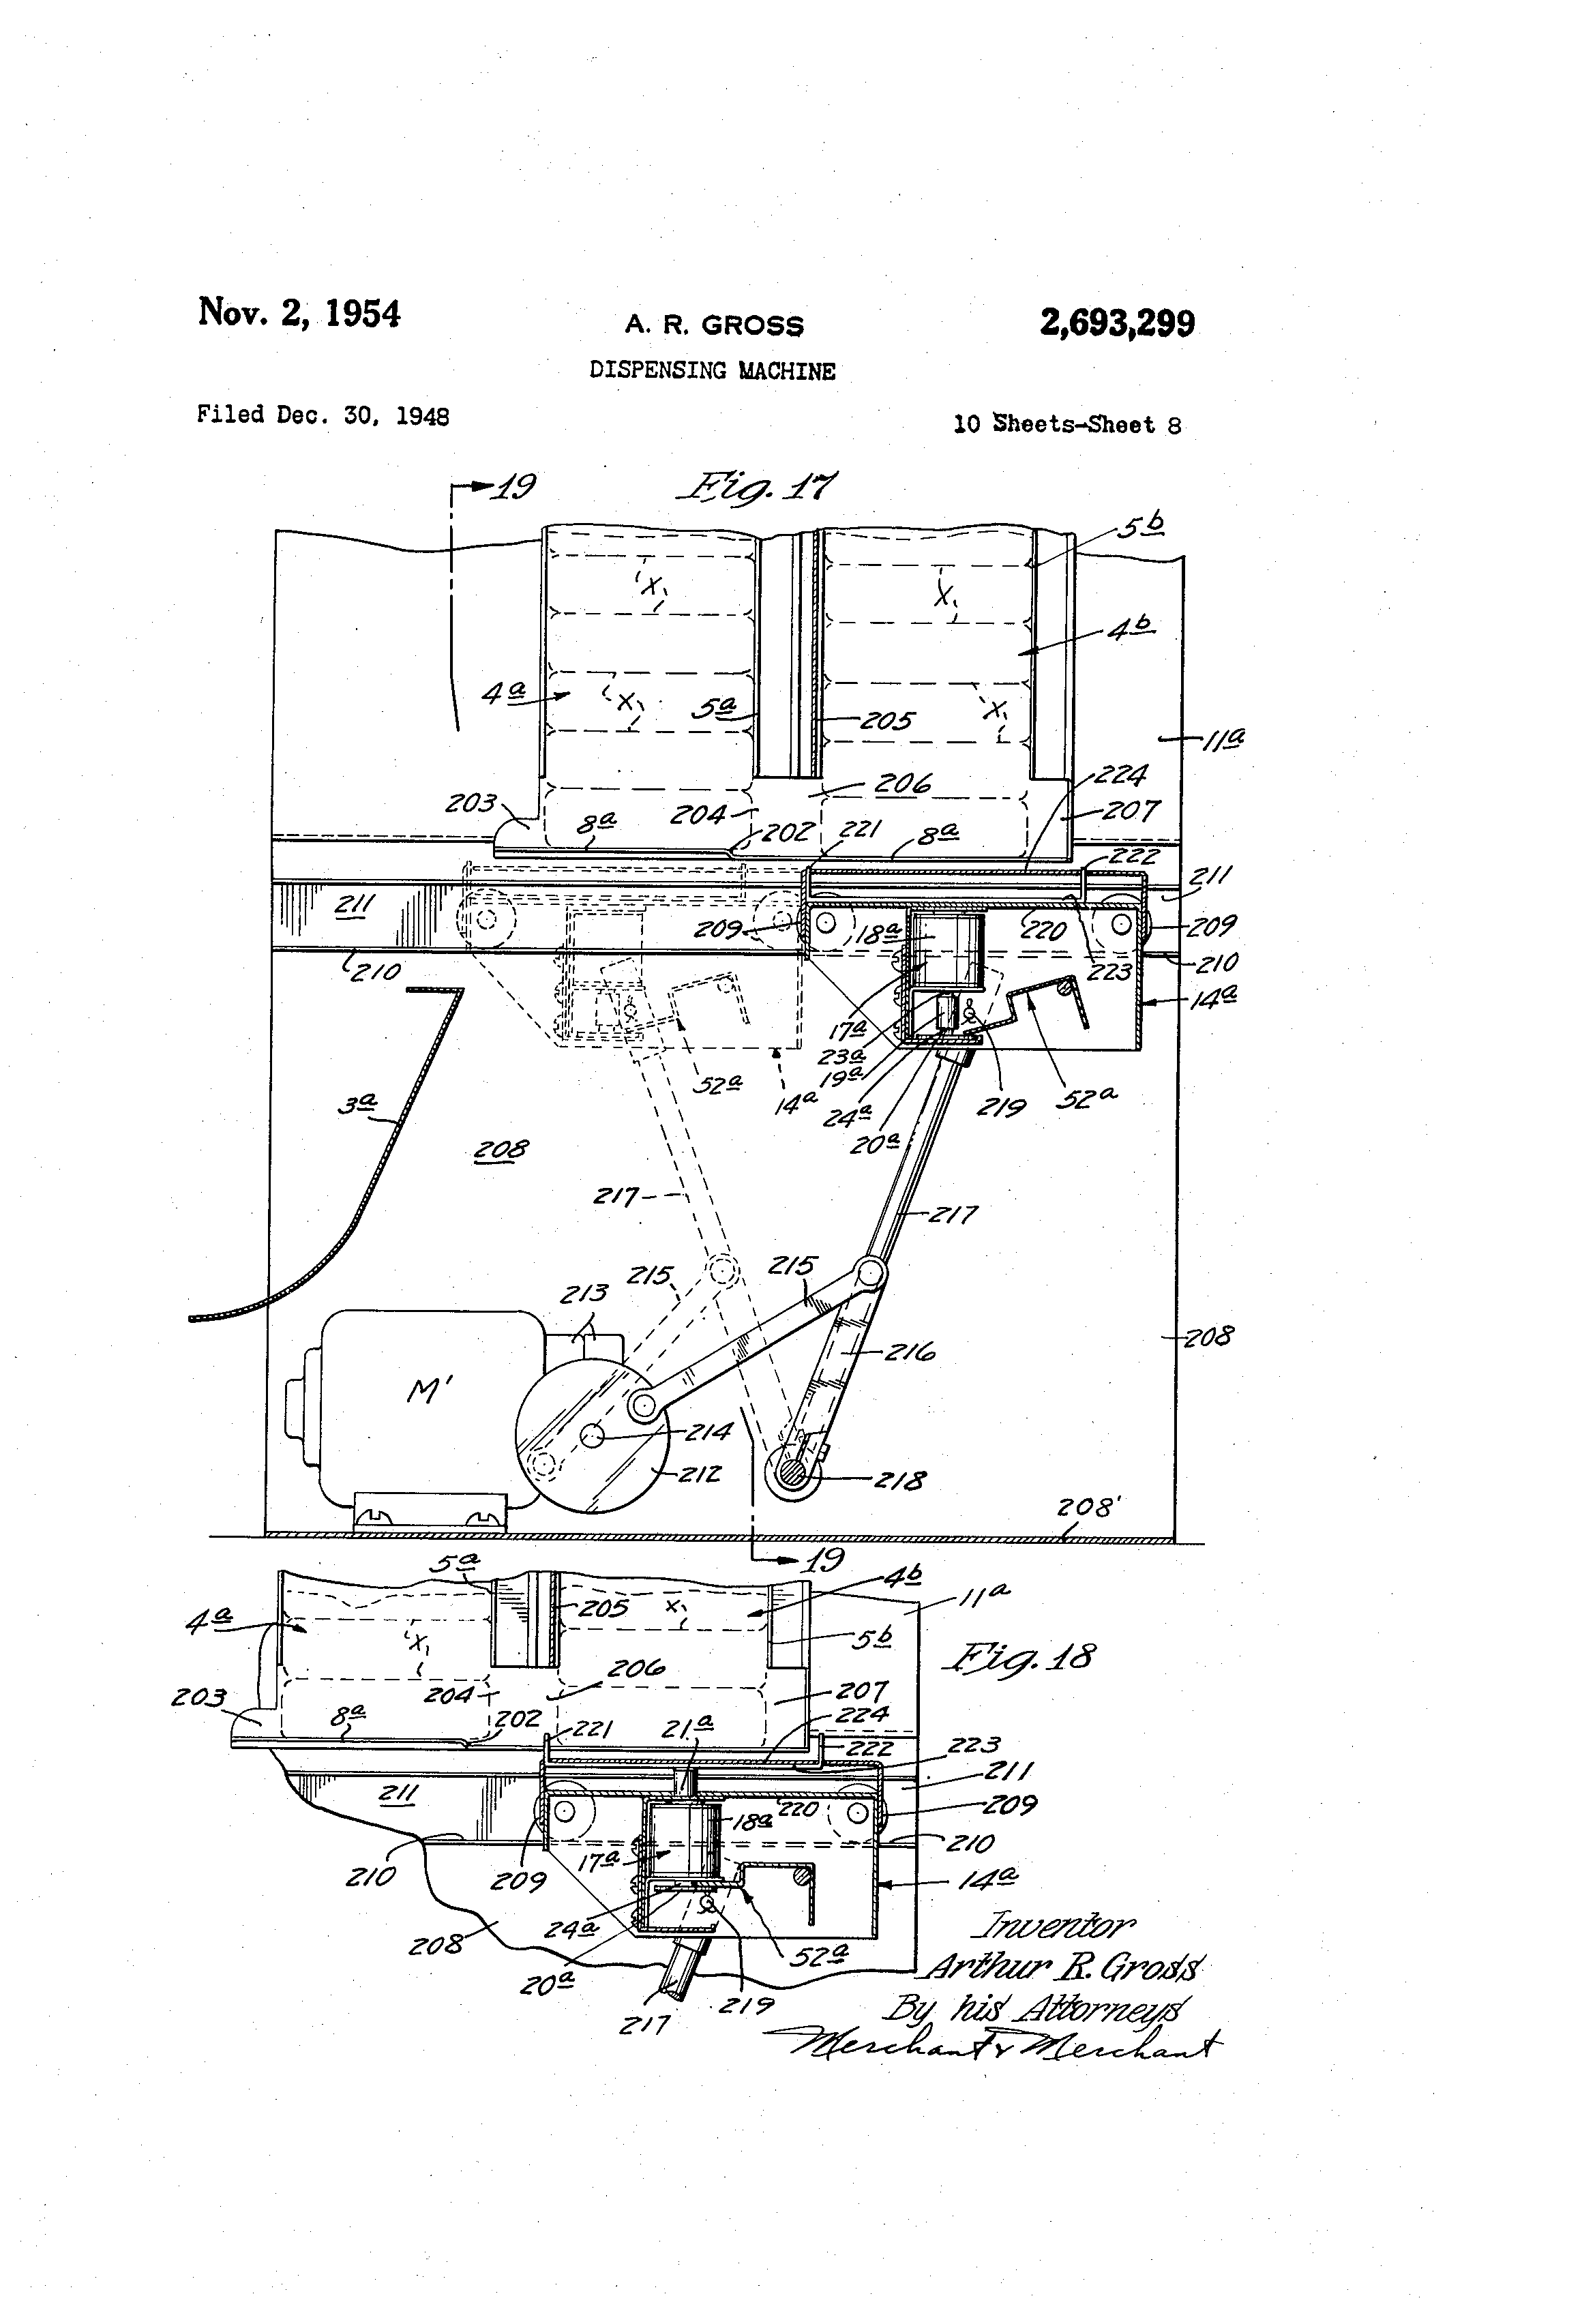 Patent Us2693299 Dispensing Machine Google Patents Vendo 63 Wiring Diagram Drawing